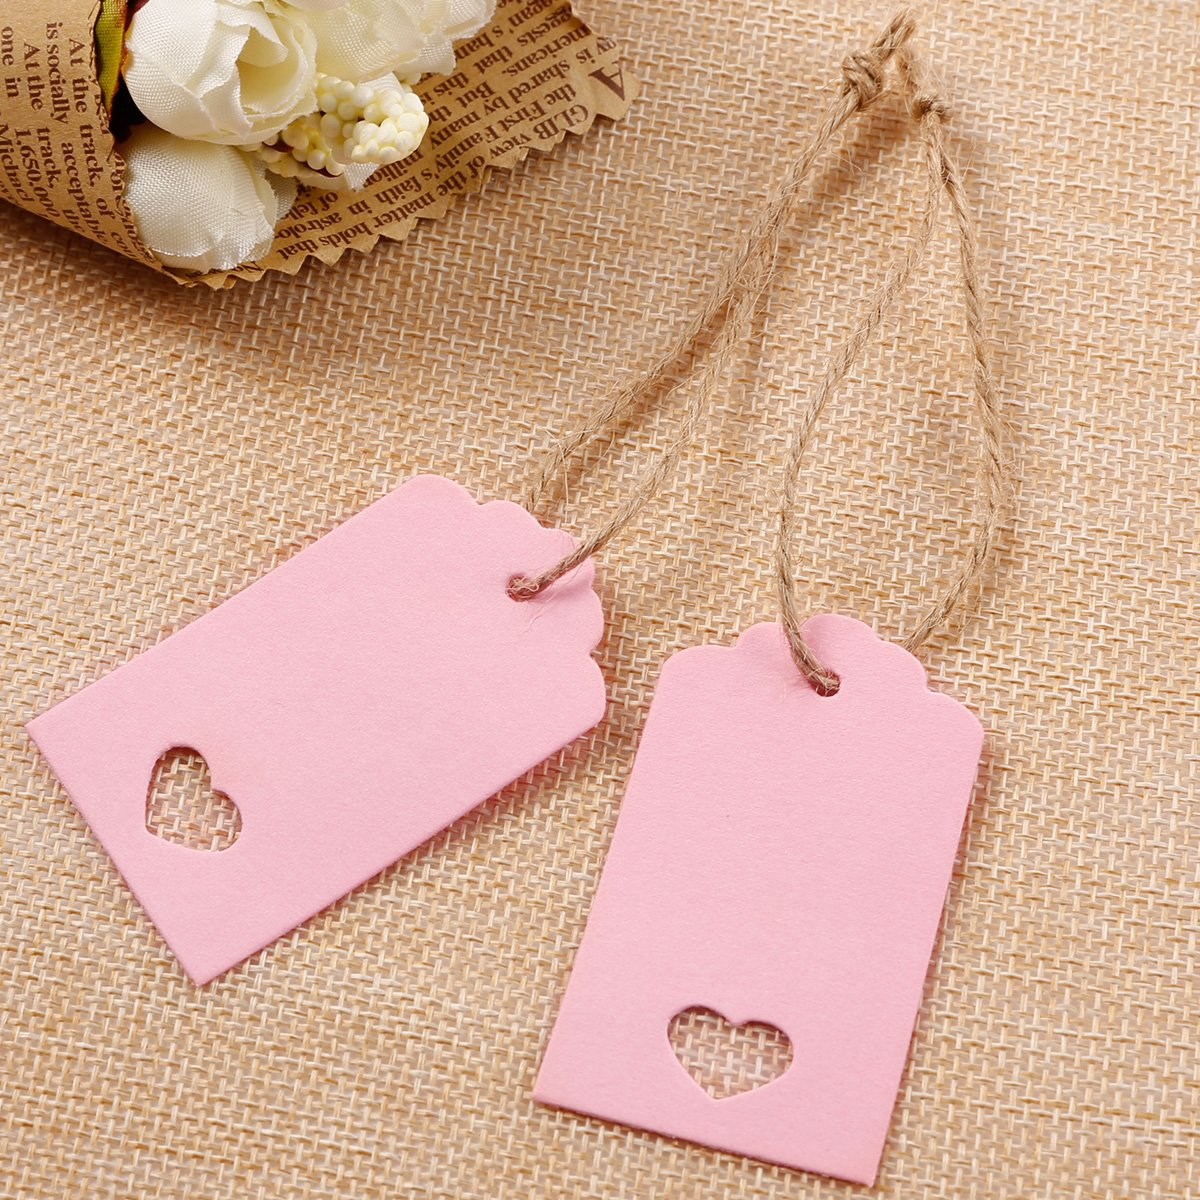 Amazon.com: Anladia Rectangle Blank Hanging Card Gift Tag Lable ...